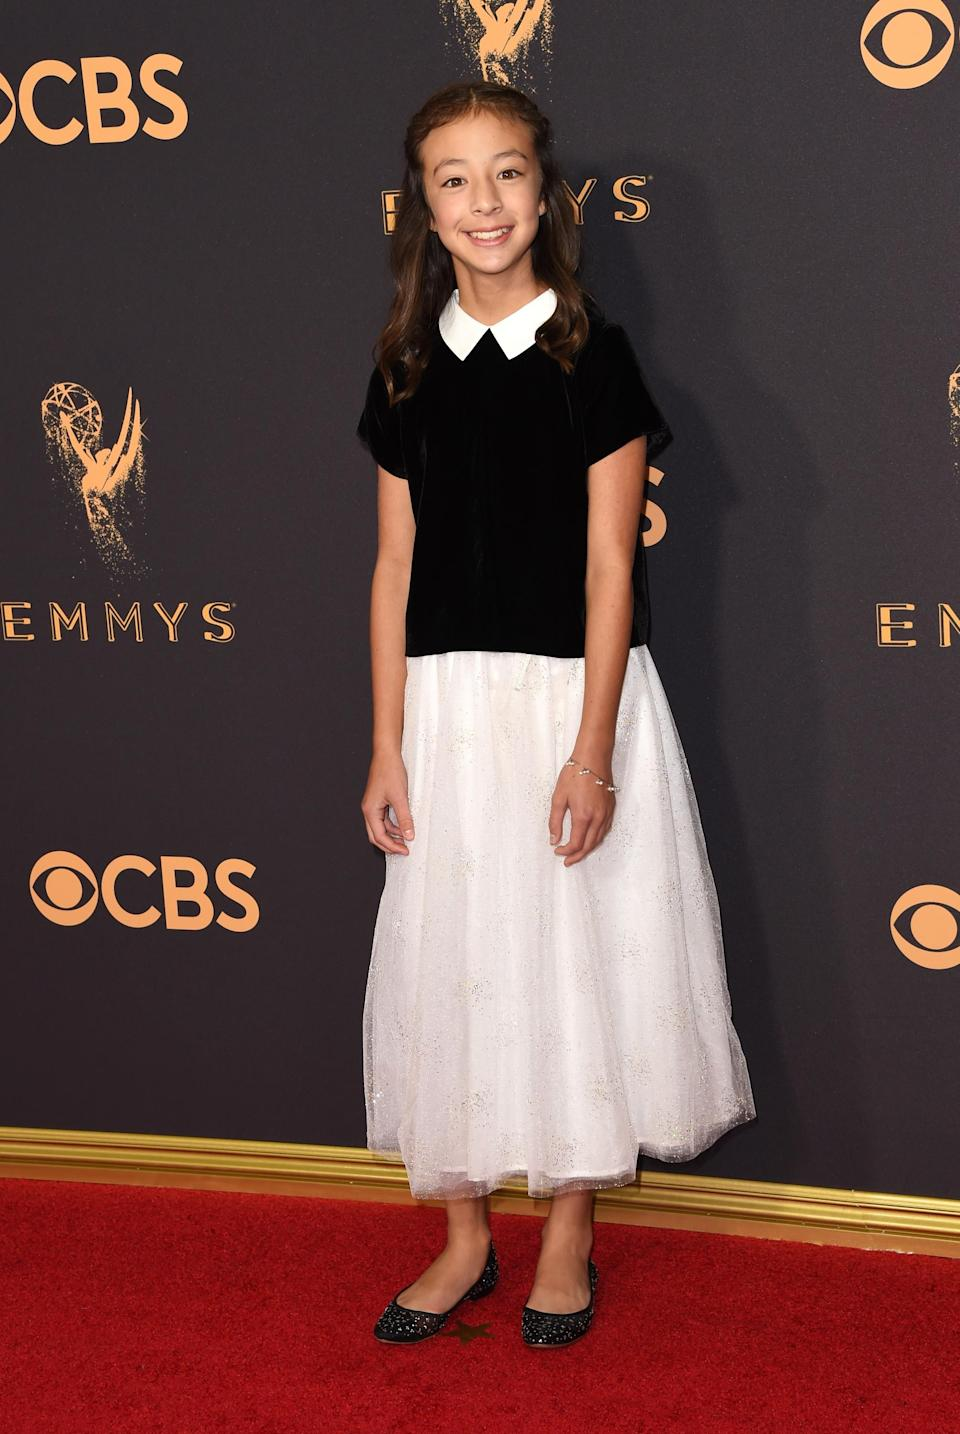 <p>Aubrey Anderson-Emmons attends the 69th Primetime Emmy Awards at the Microsoft Theater on Sept. 17, 2017, in Los Angeles. (Photo: Getty Images) </p>